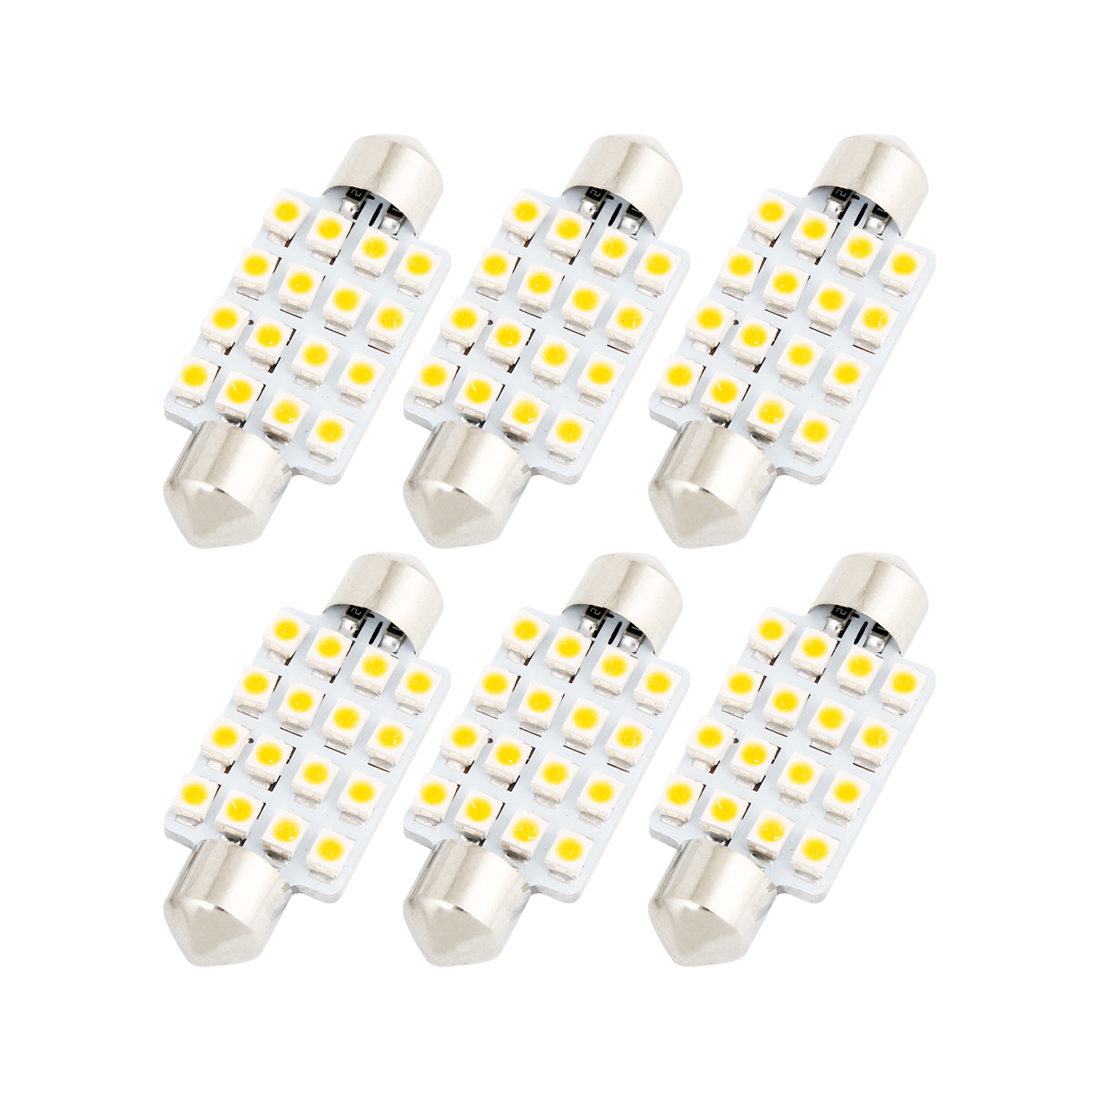 6 Pcs 16-LED Warm White 1210 SMD 42mm Festoon Dome Light 212-2 6429 Internal